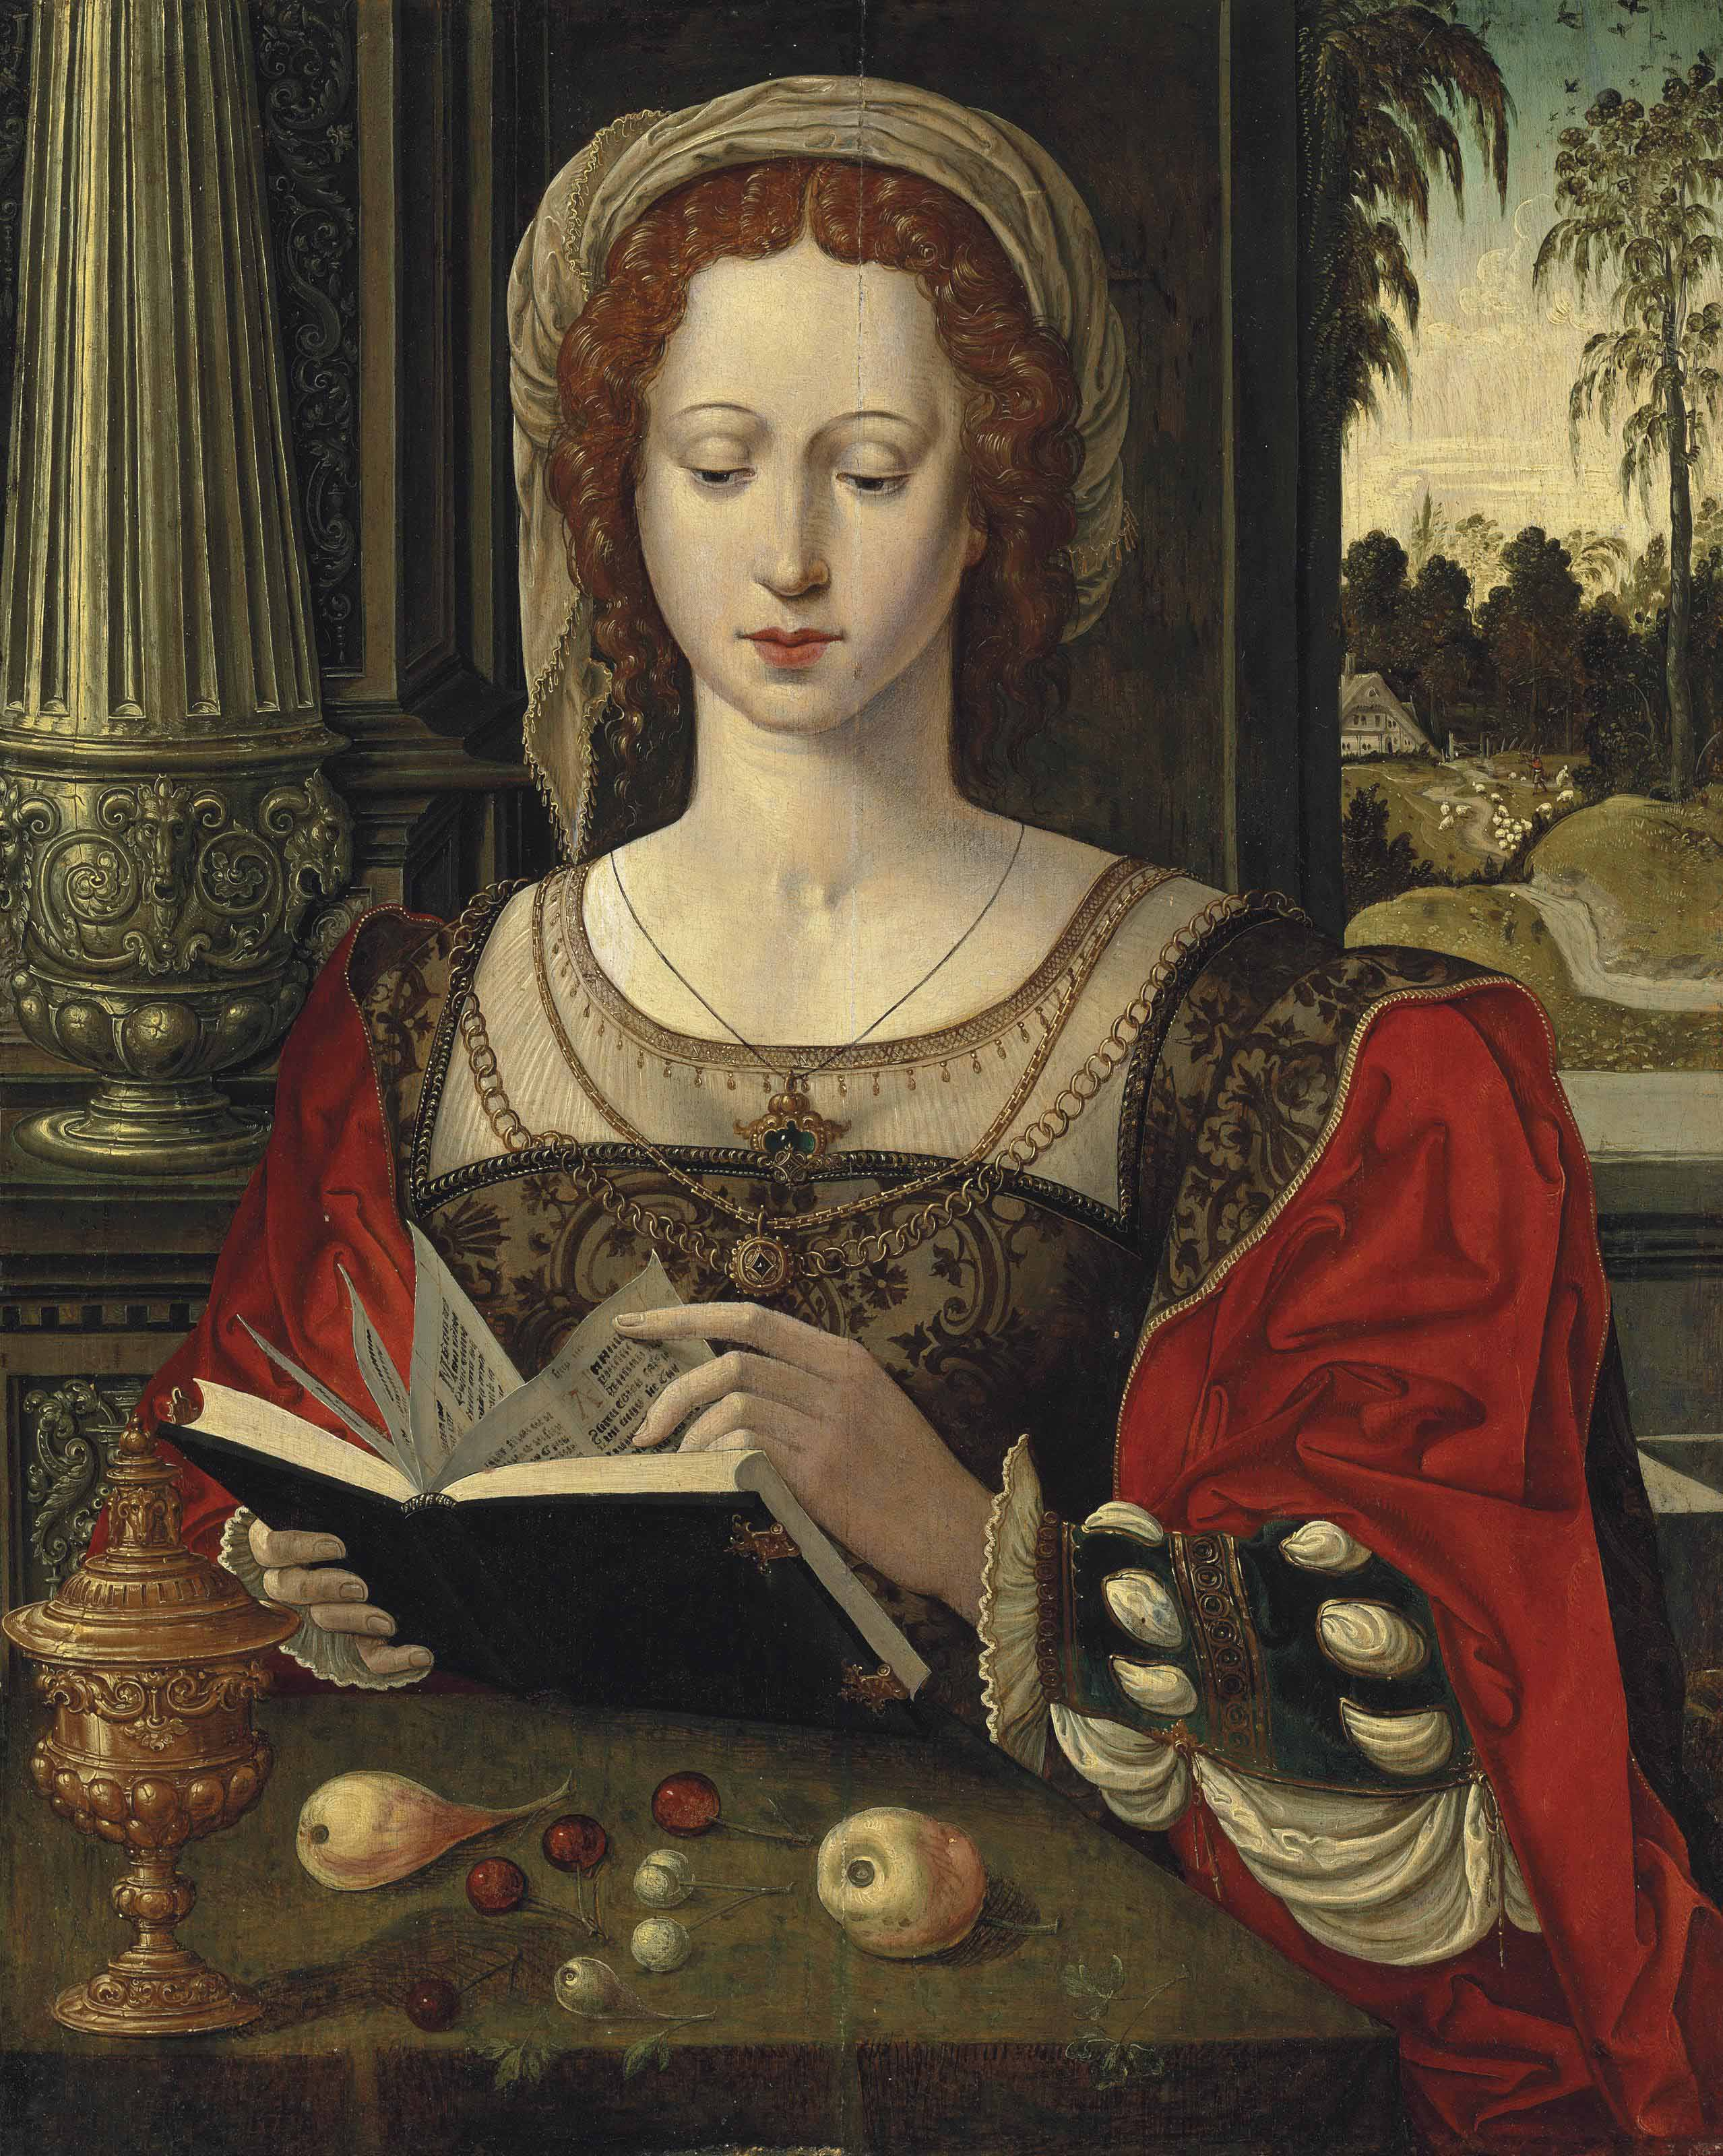 Saint Mary Magdalene reading, at a table with fruit and a golden tazza